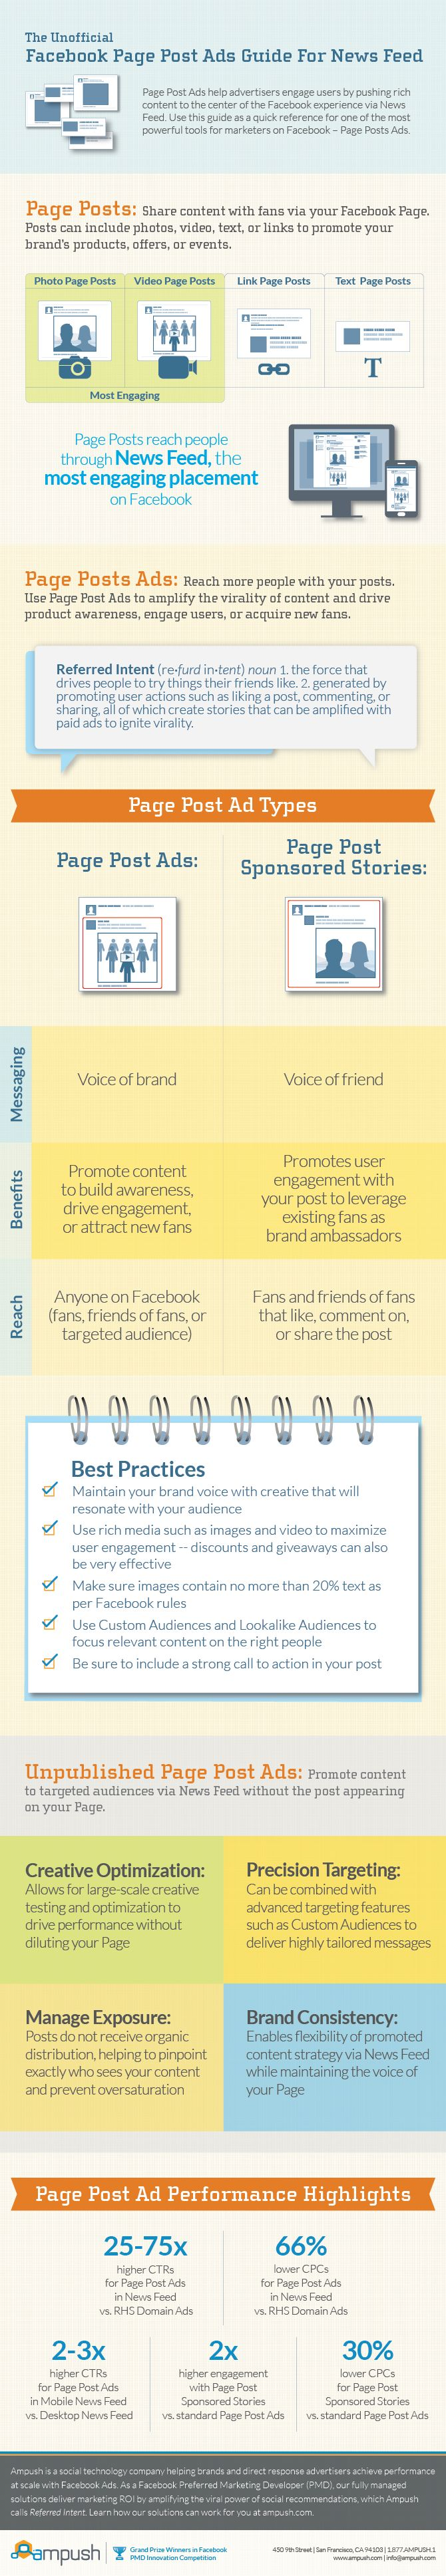 Facebook Page Post Ads Guide for News Feed [Infographic]